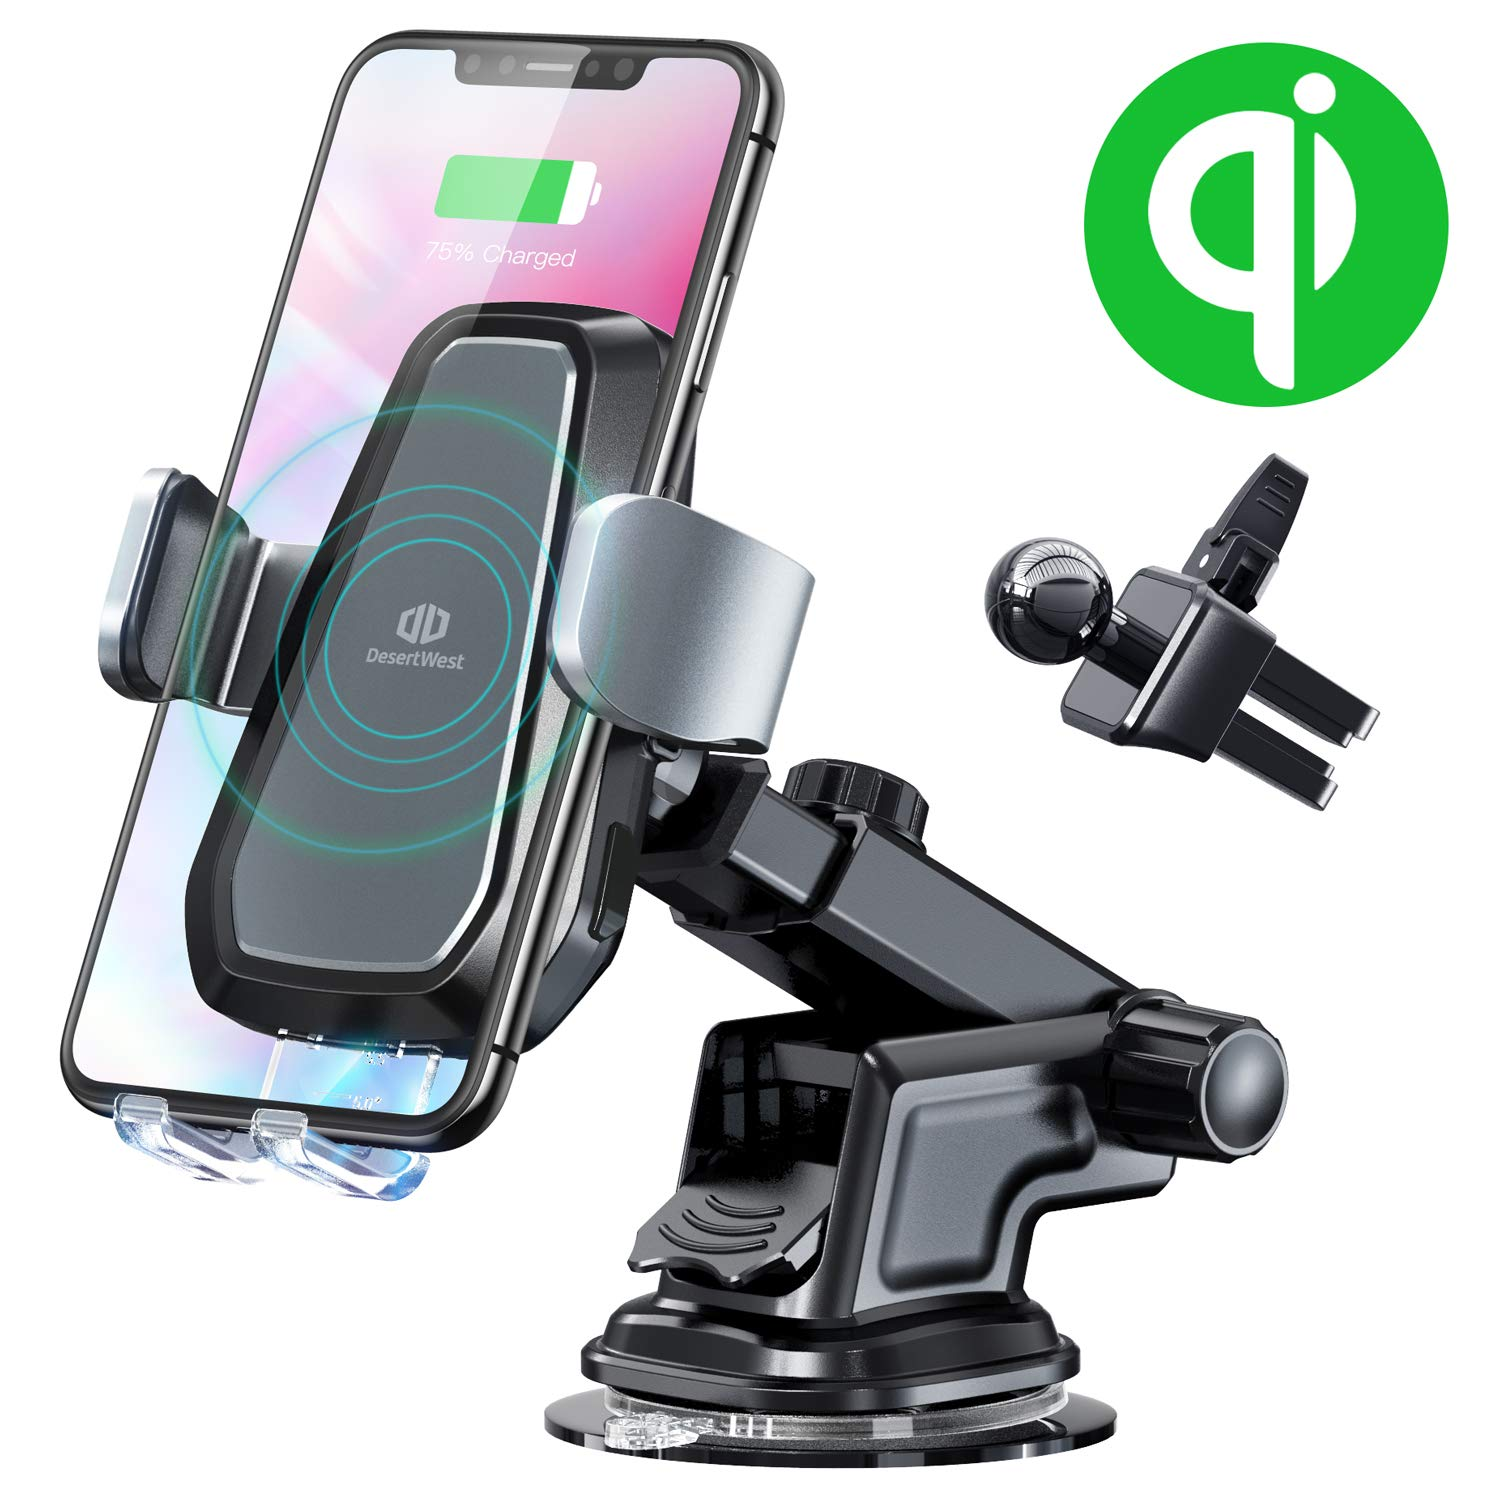 DesertWest Wireless Car Charger Phone Mount, Fast Charge Car Holder Automatic Clamping Dashboard & Windshield & Air Vent Holder for QI Smartphones (Holder+Charger)